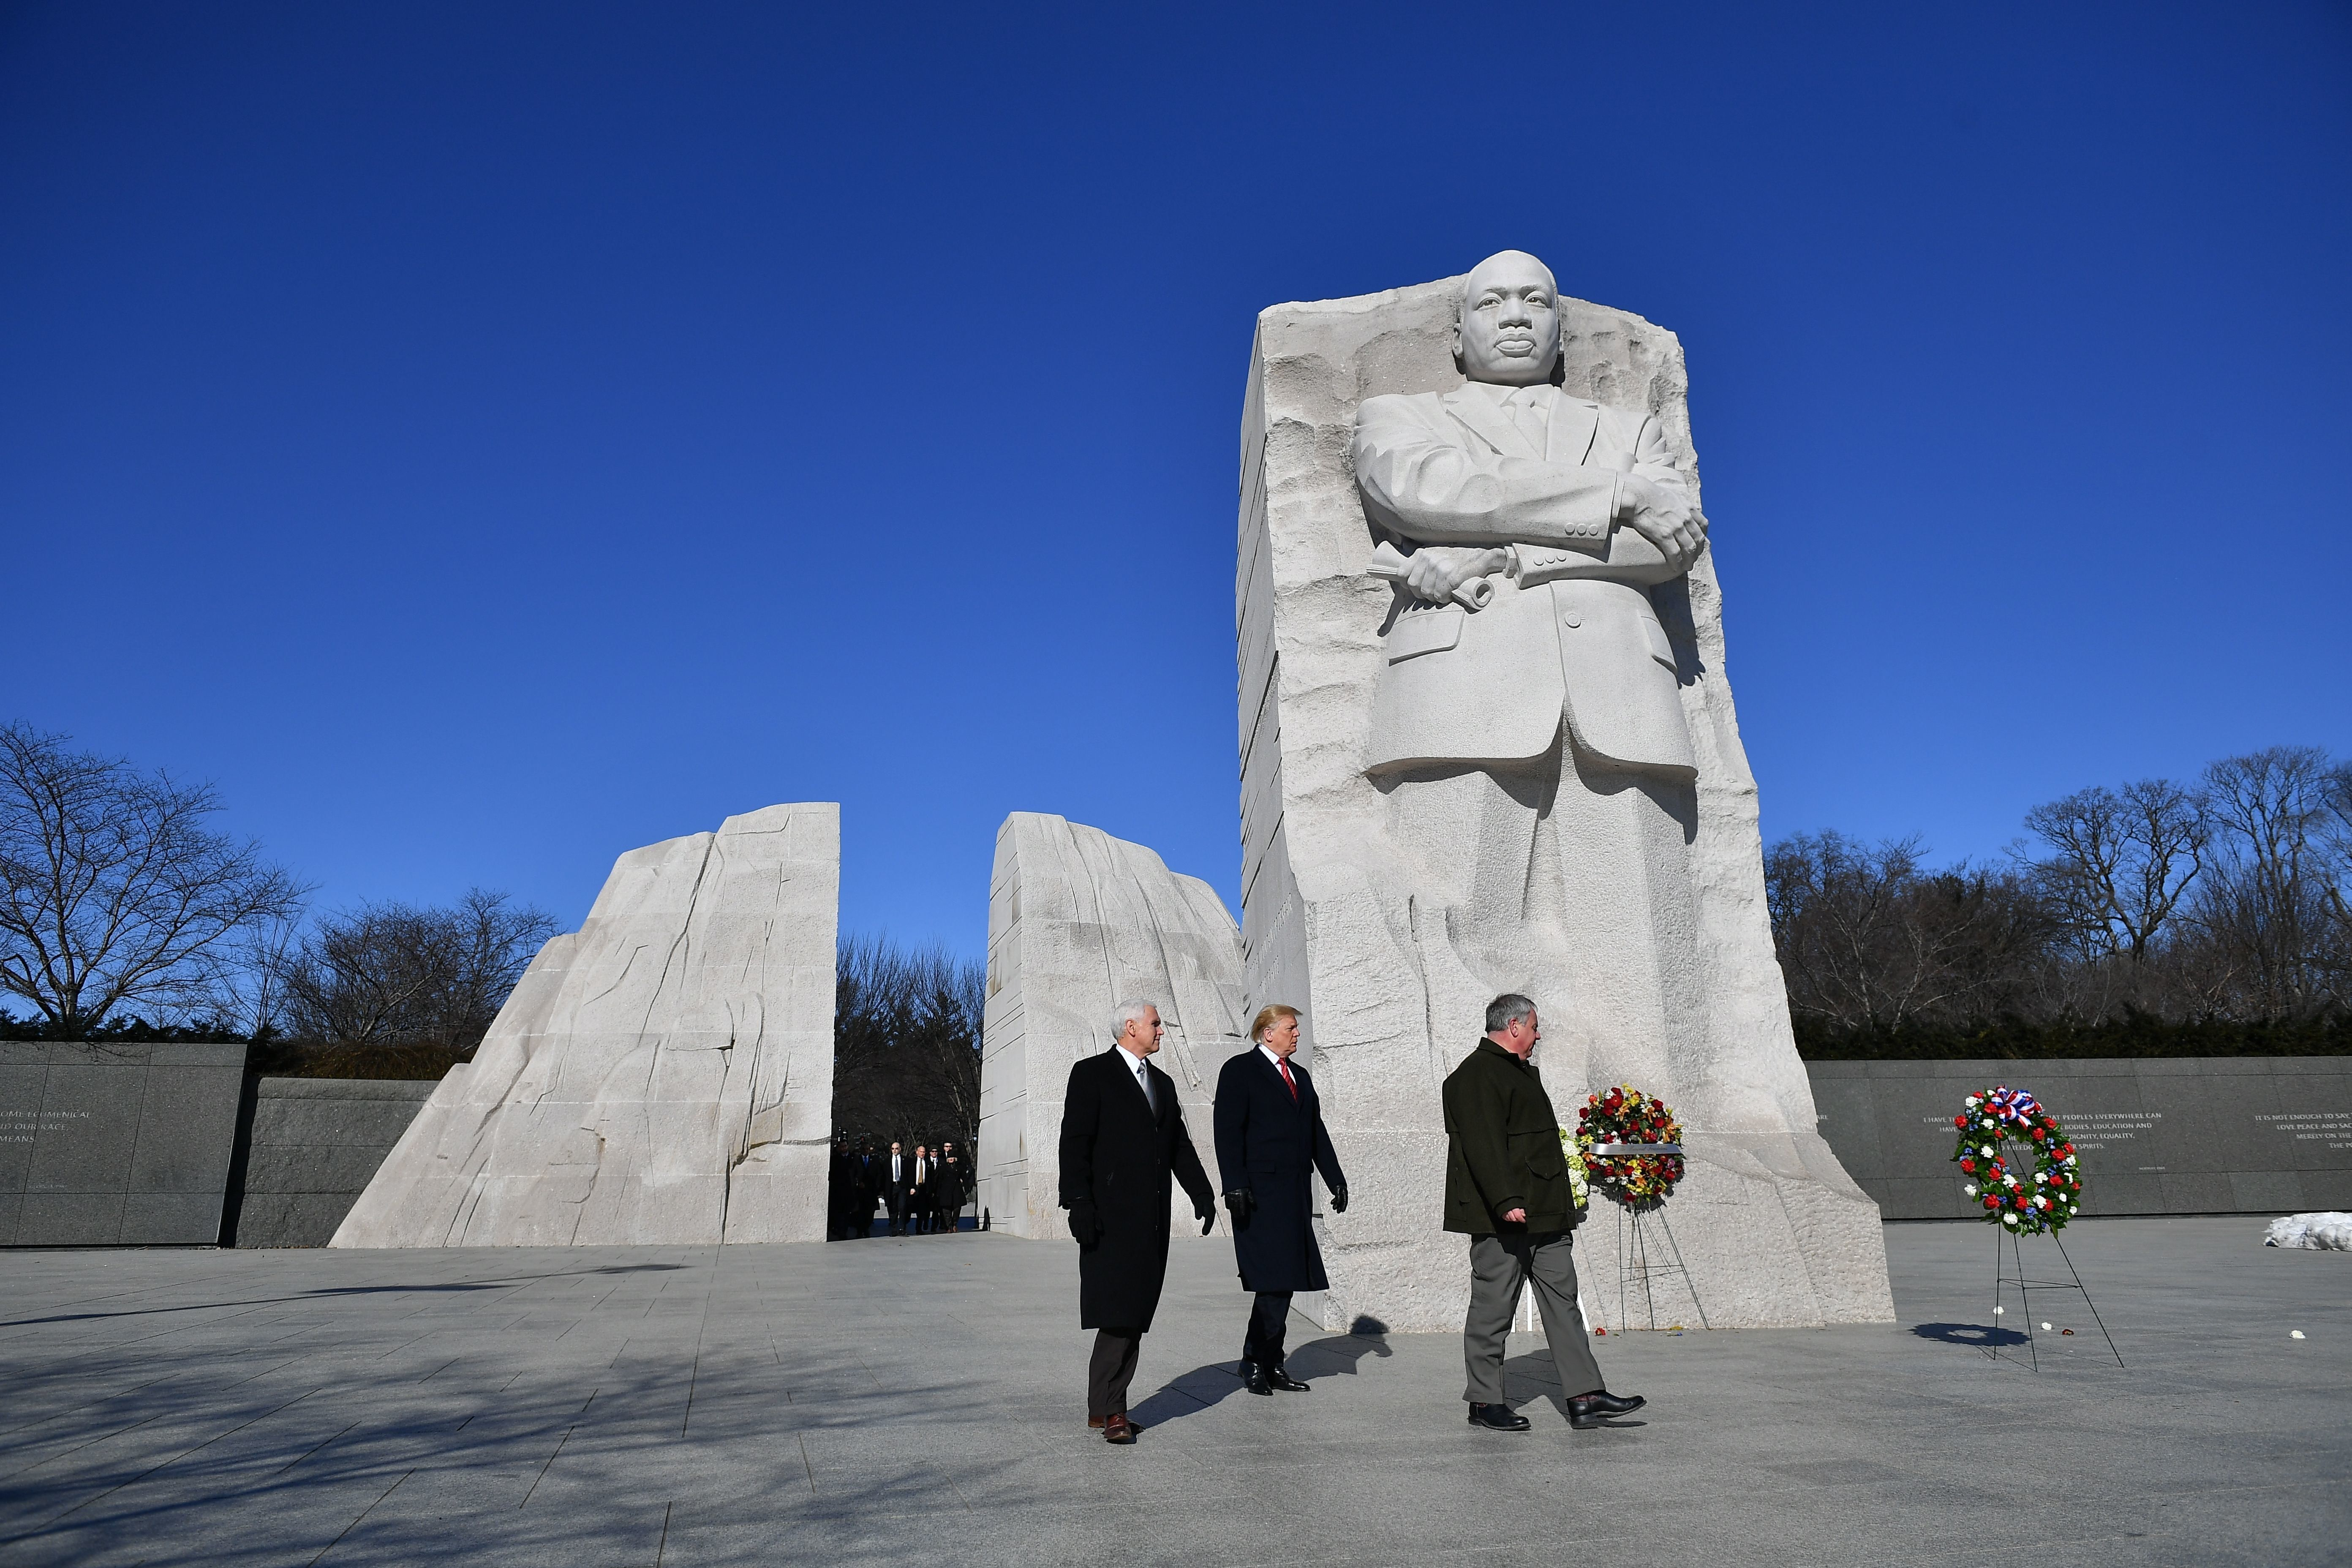 US President Donald Trump(C) and US Vice President Mike Pence(L) visit the Martin Luther King Jr. Memorial in Washington, DC on Martin Luther King Day on January 21, 2019. (Photo by MANDEL NGAN / AFP)        (Photo credit should read MANDEL NGAN/AFP/Getty Images)